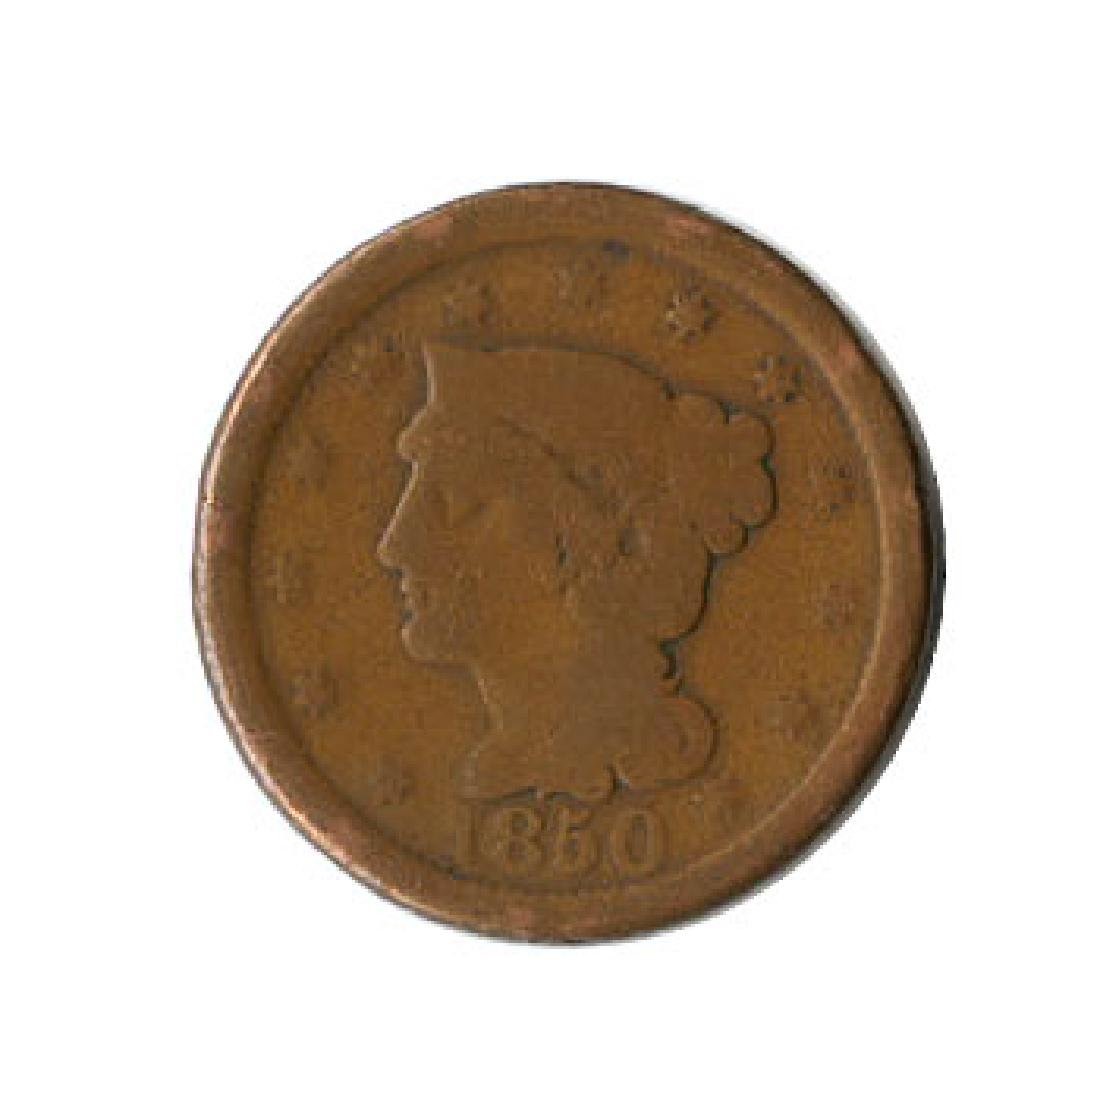 Early Type Braided Hair Large Cent 1840-1857 G-VG